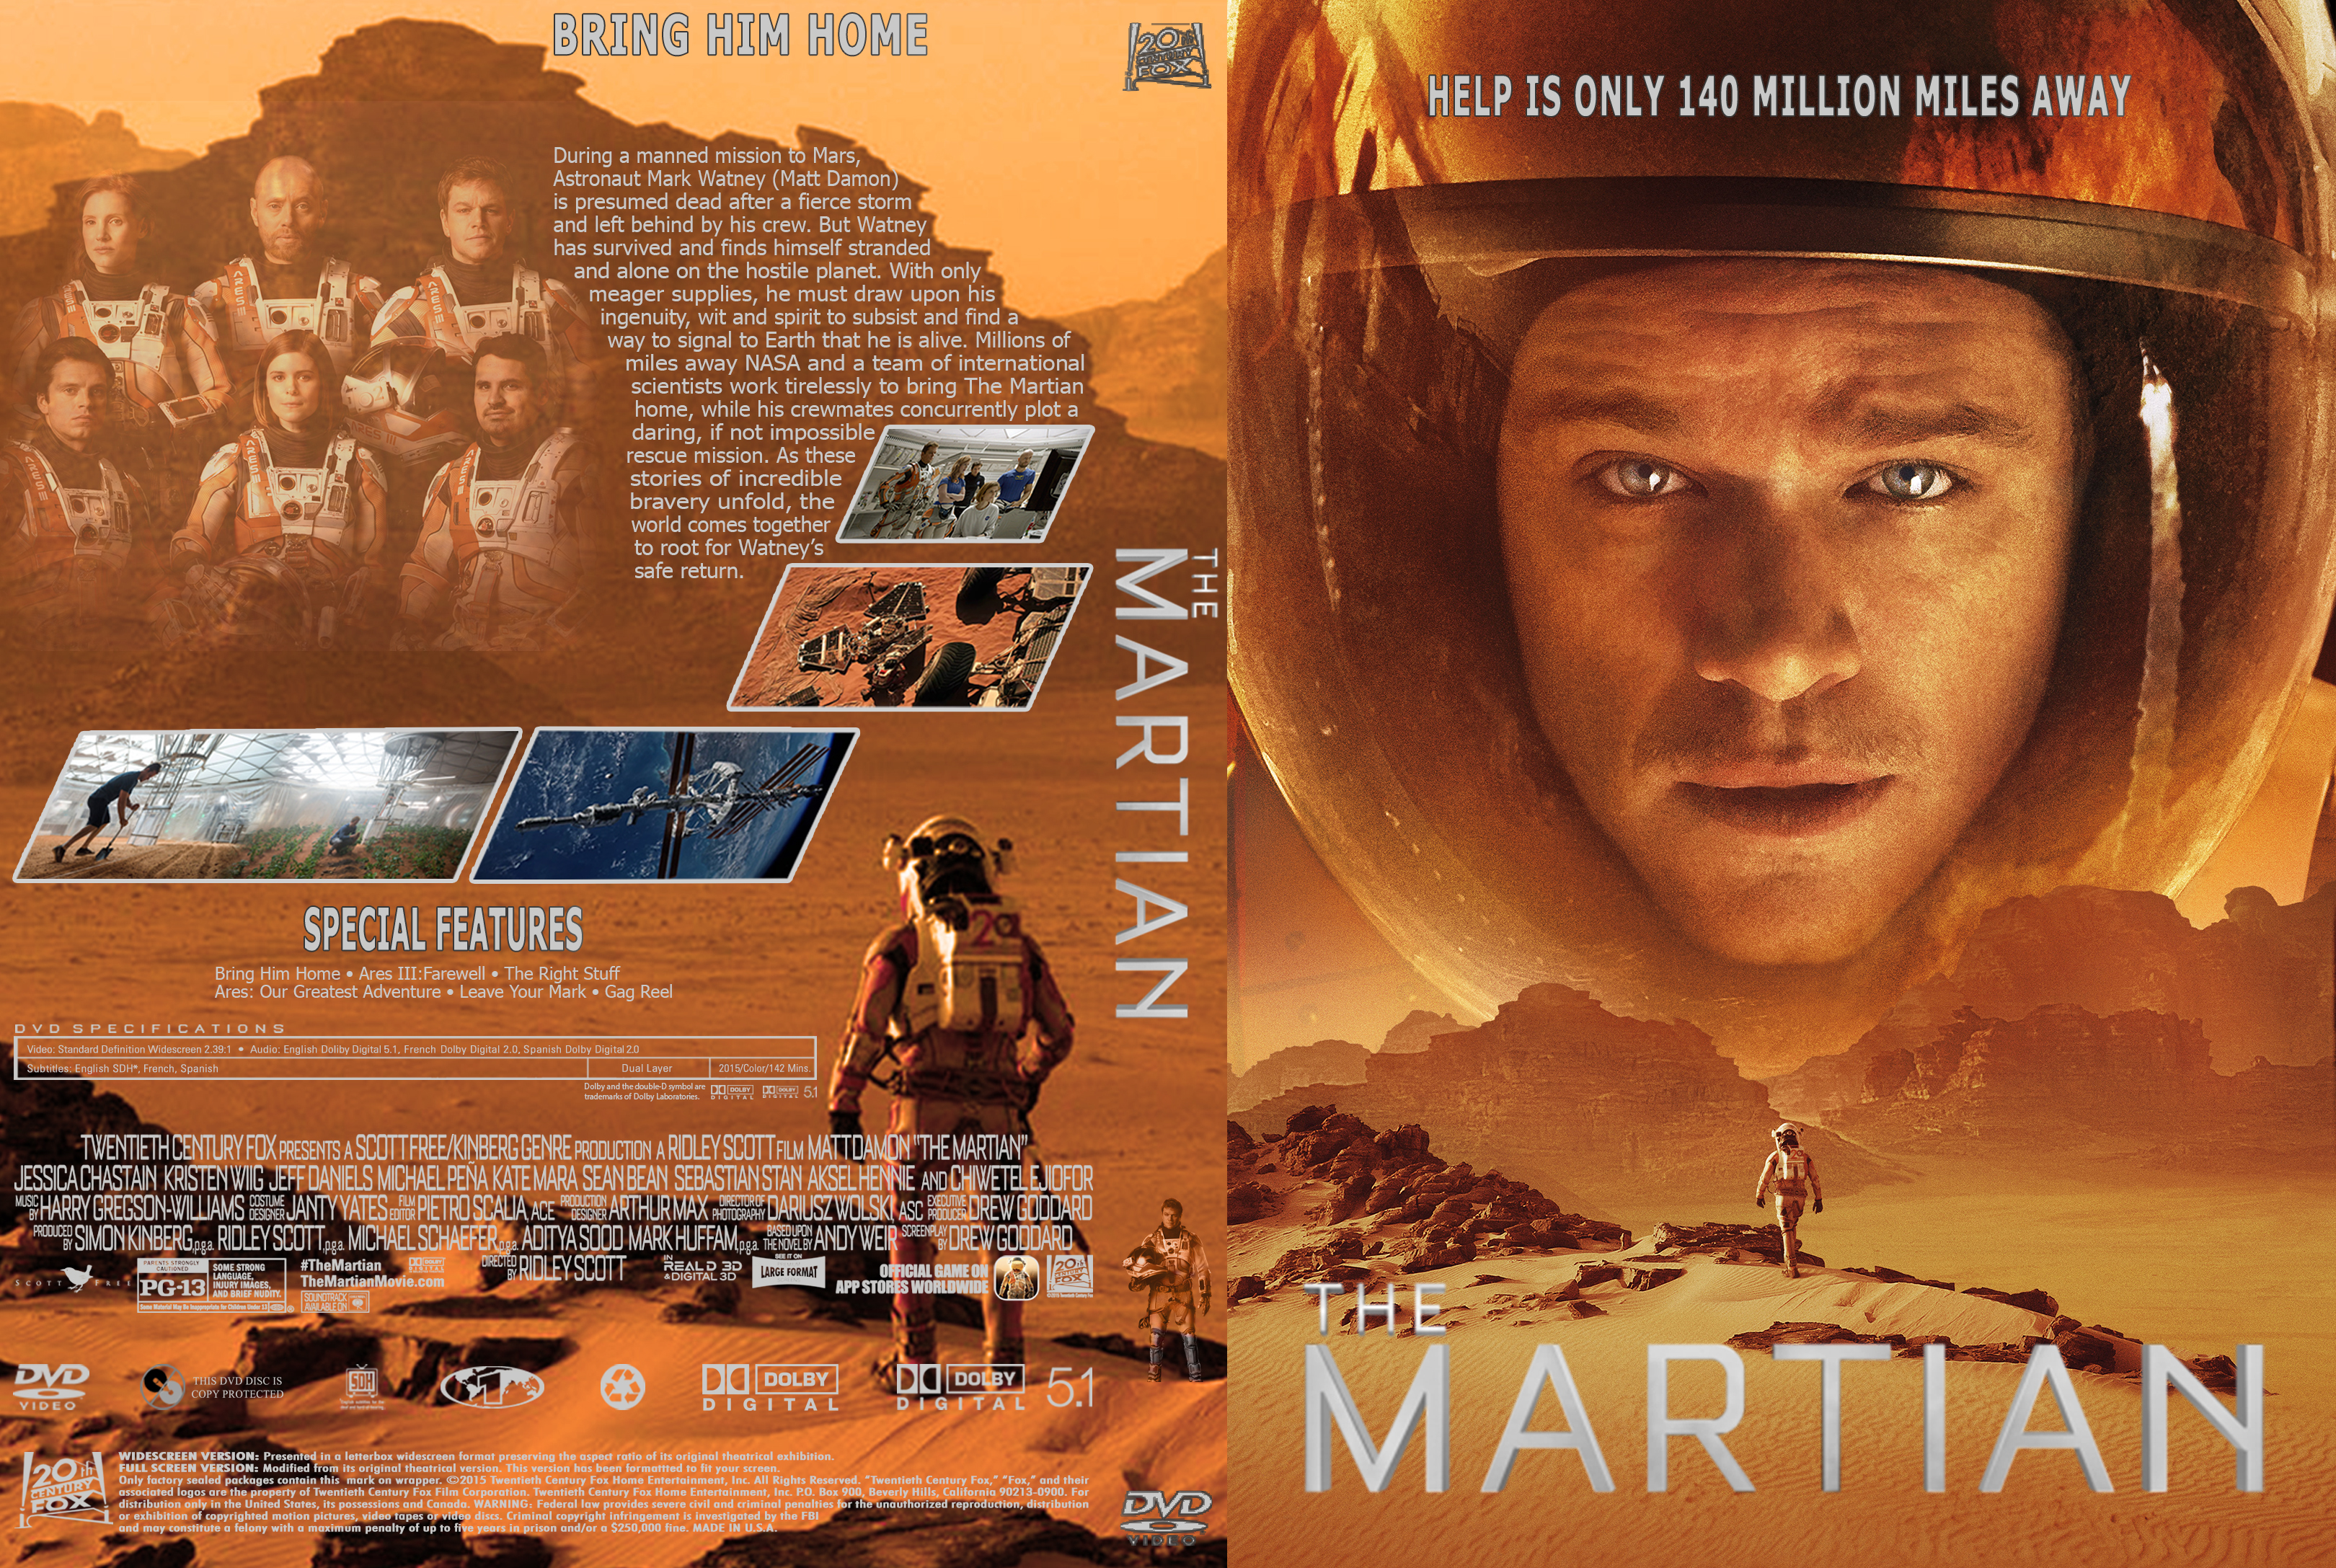 The Martian DVD Cover Cover Addict DVD Bluray Covers